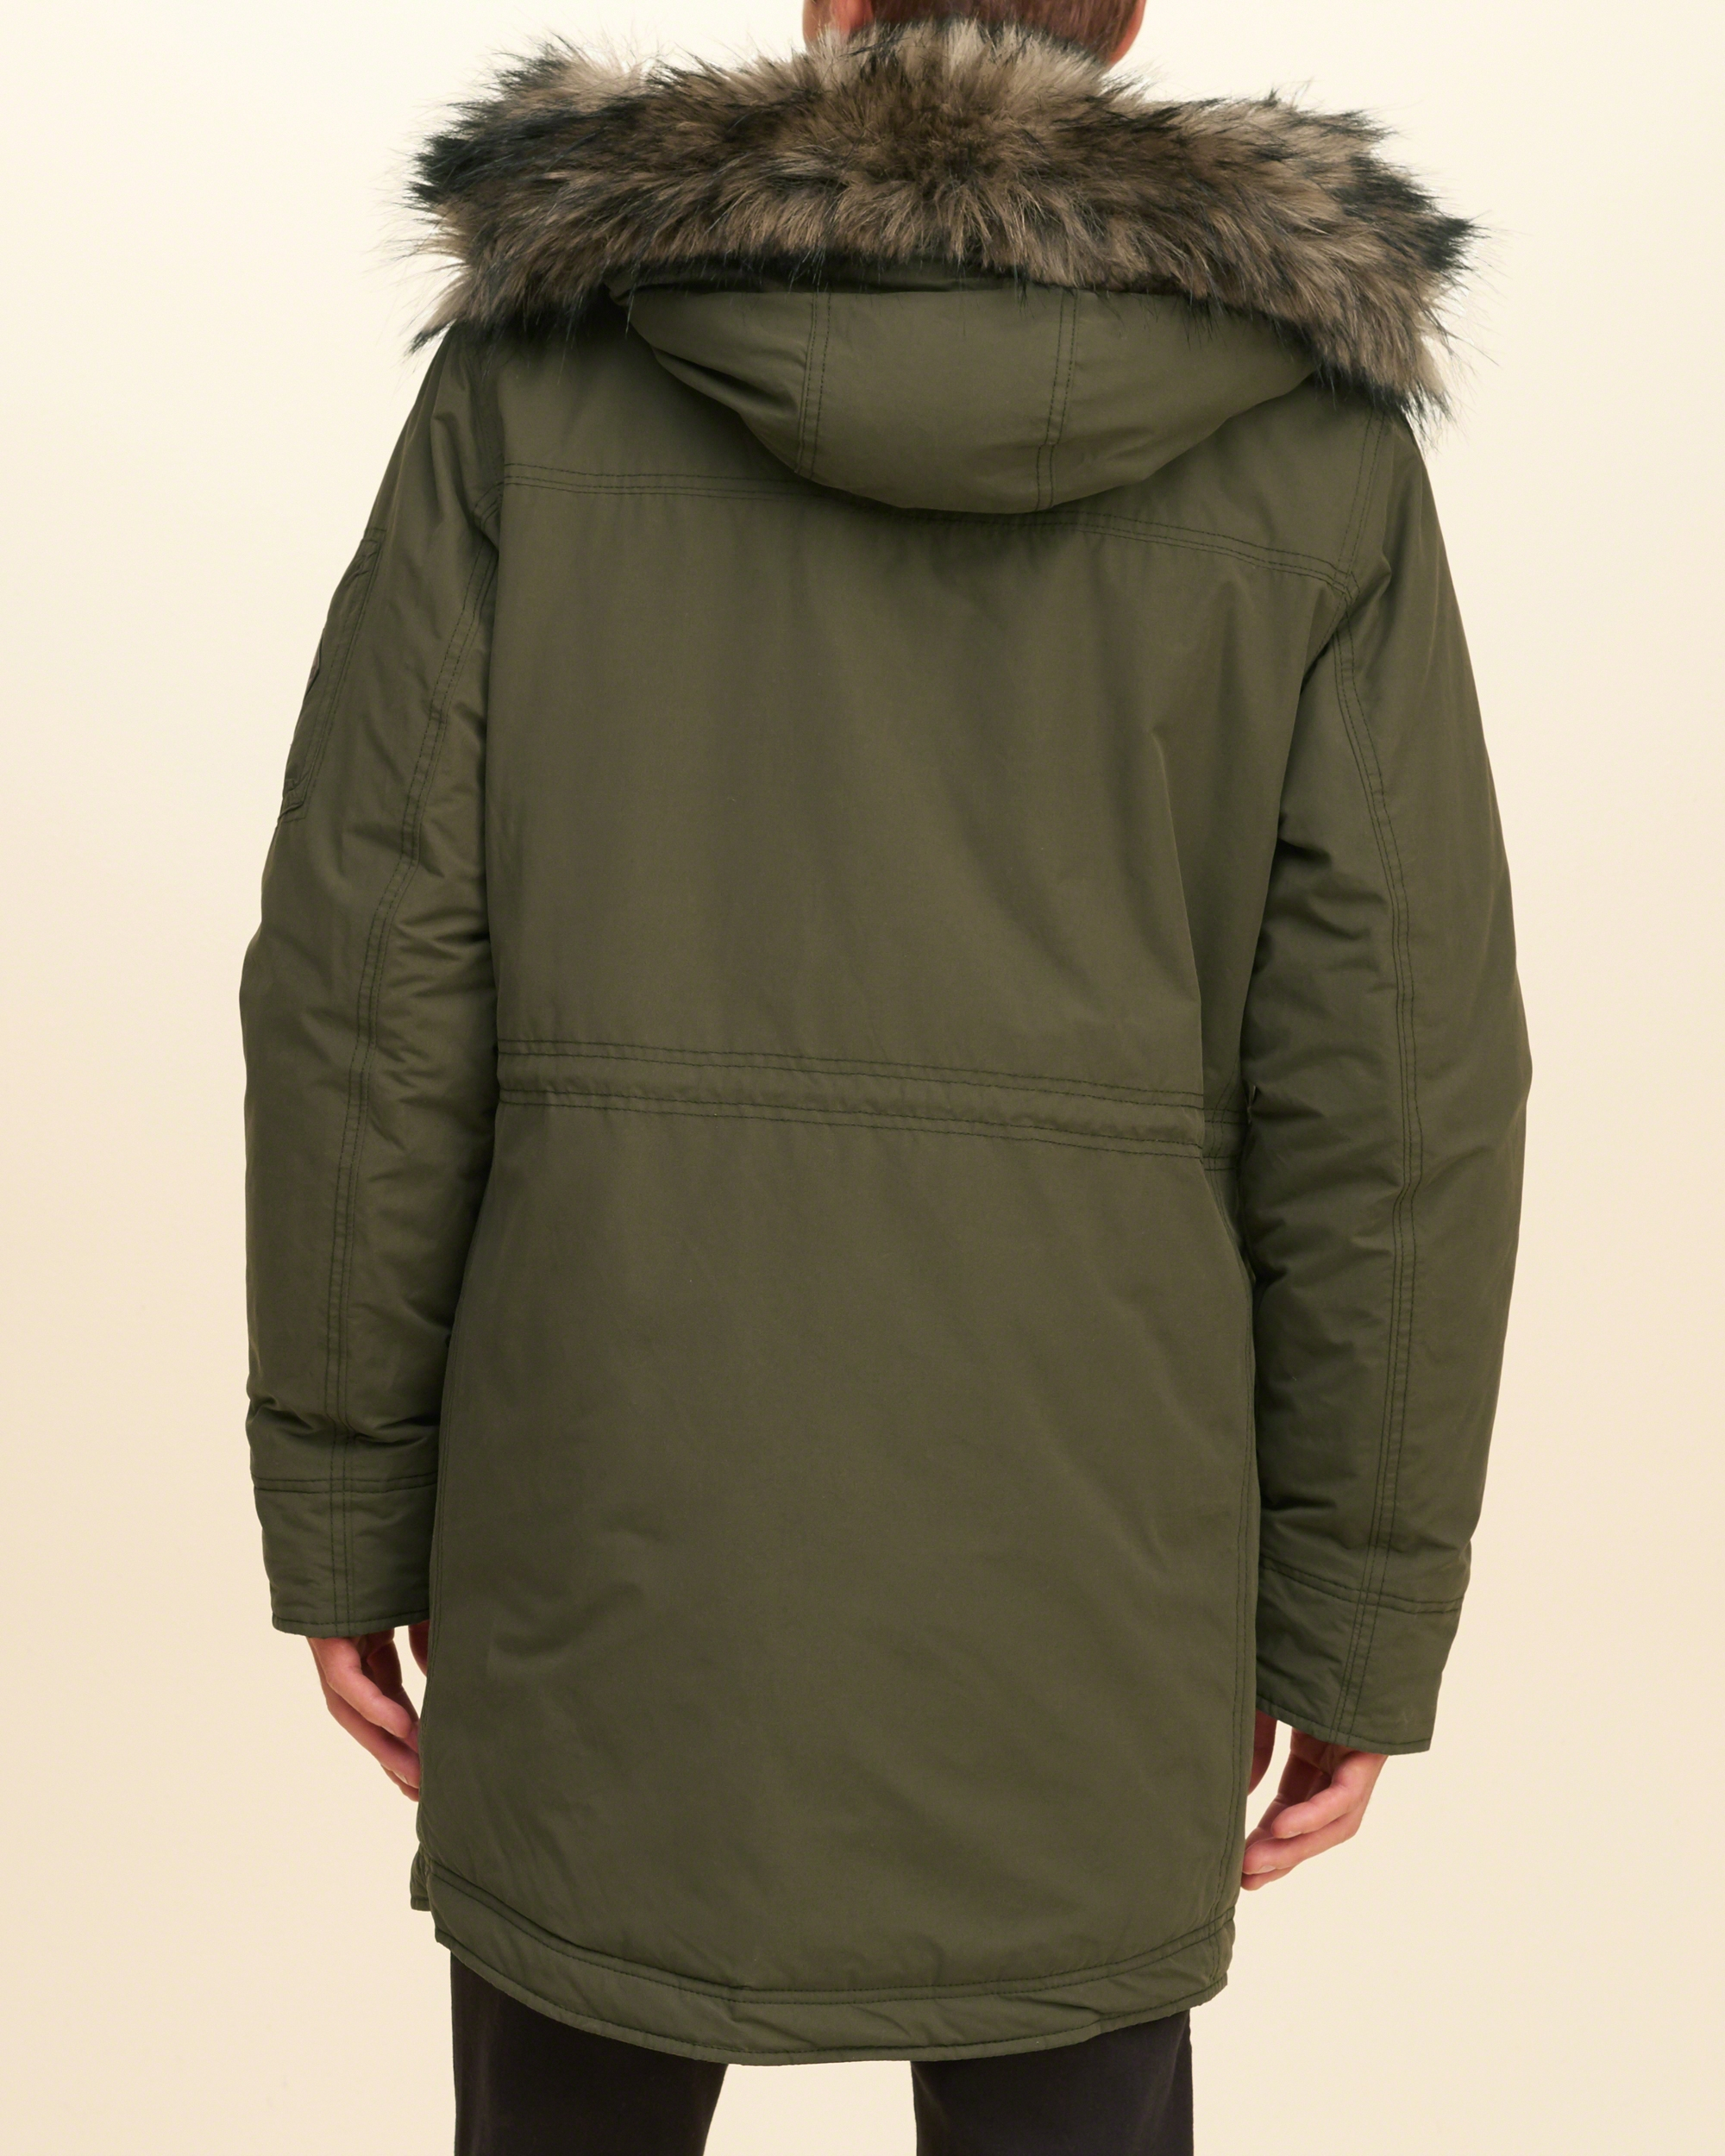 lyst hollister faux fur lined parka in green for men